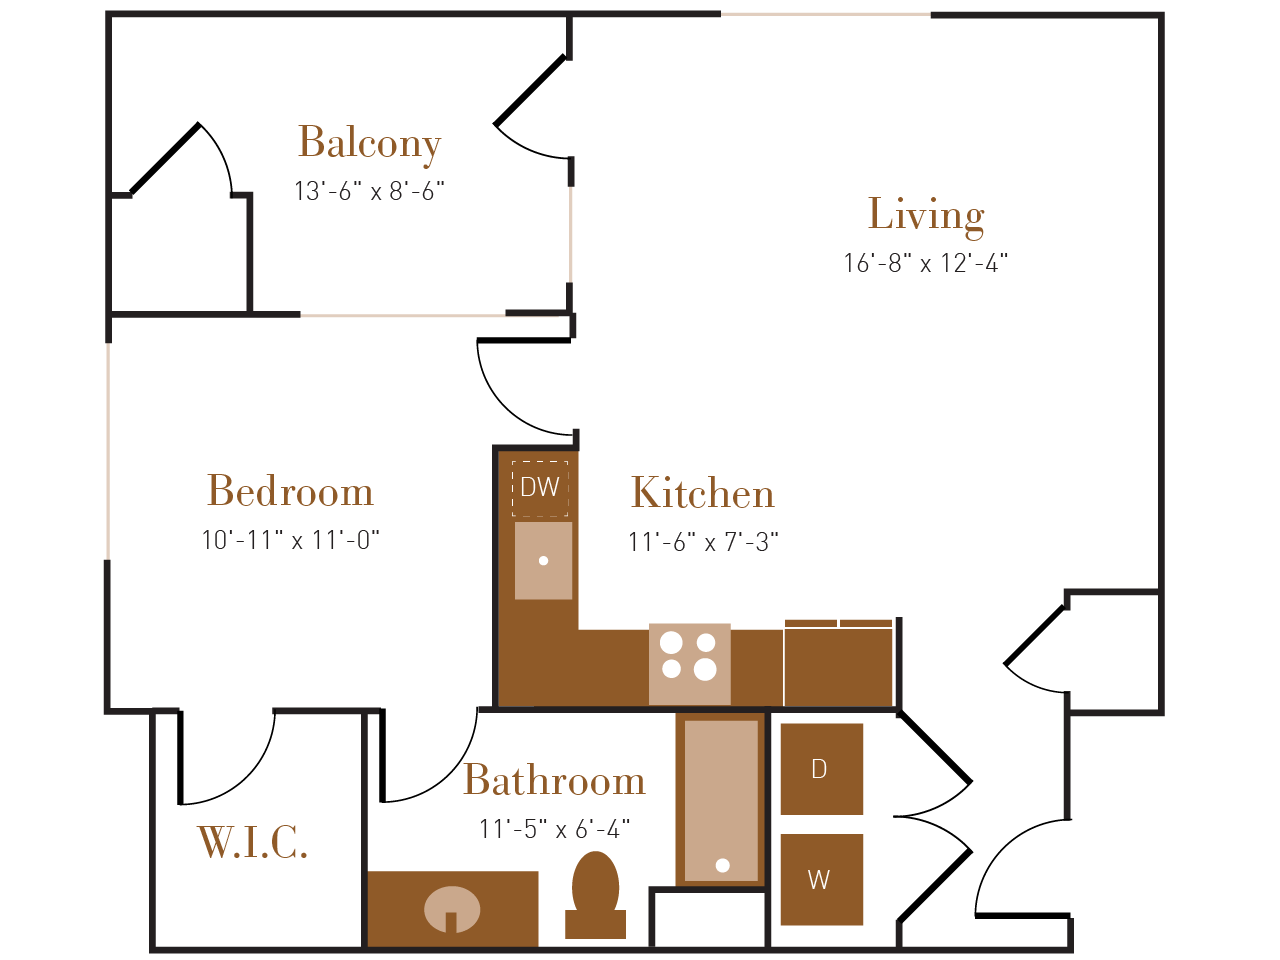 A Eight A floor plan diagram. One bedroom, one bathroom, an open kitchen and living area, a balcony, and a washer dryer.